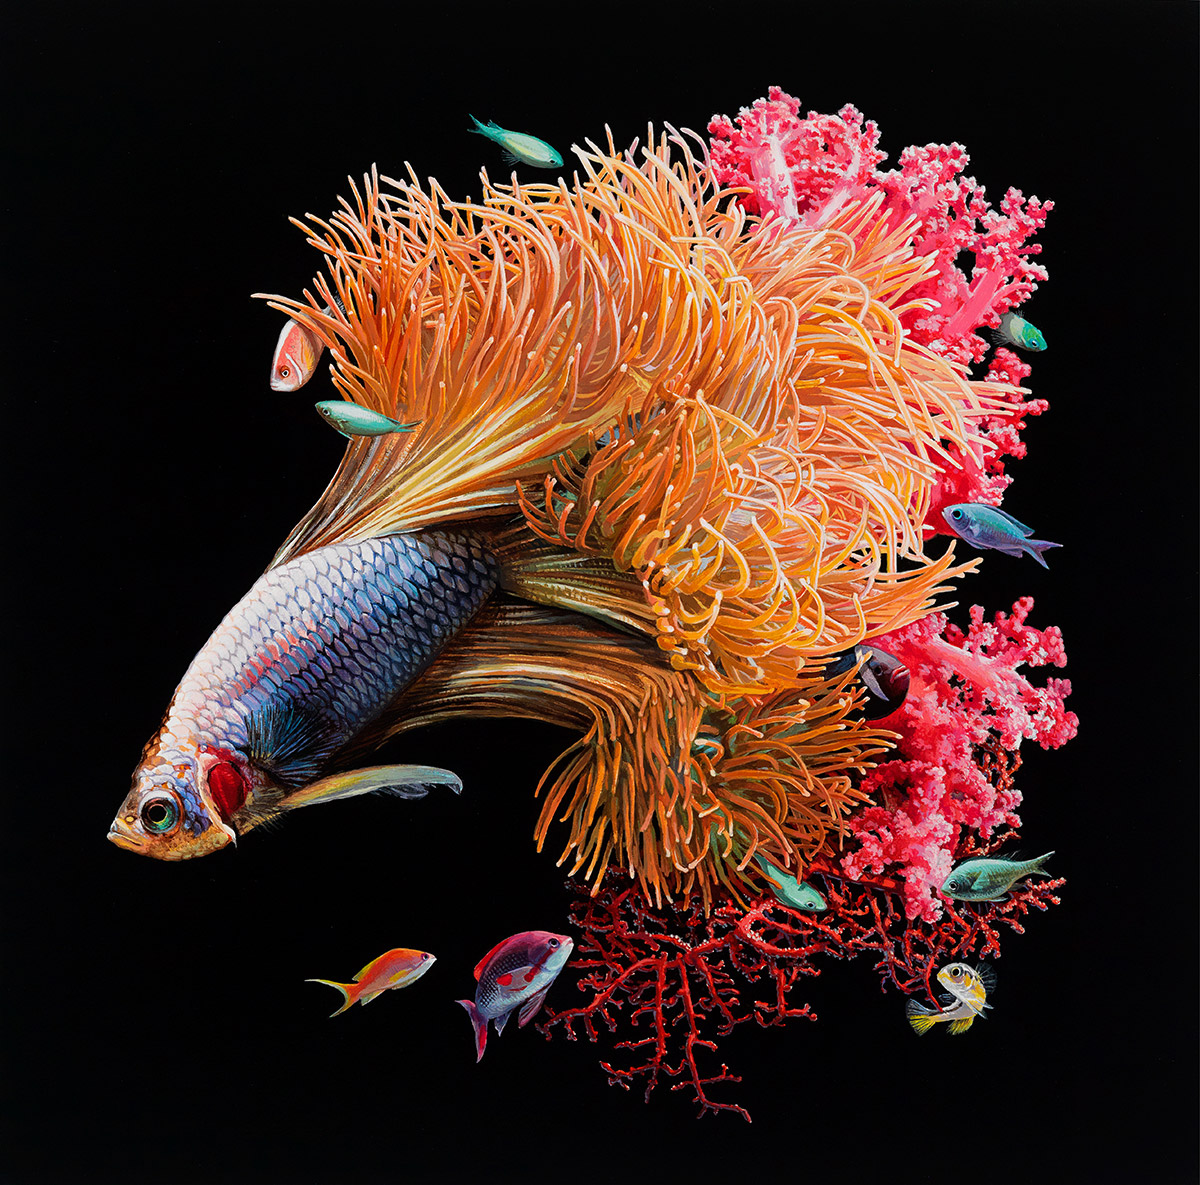 Hyper-Realistic Fish Paintings by Lisa Ericson